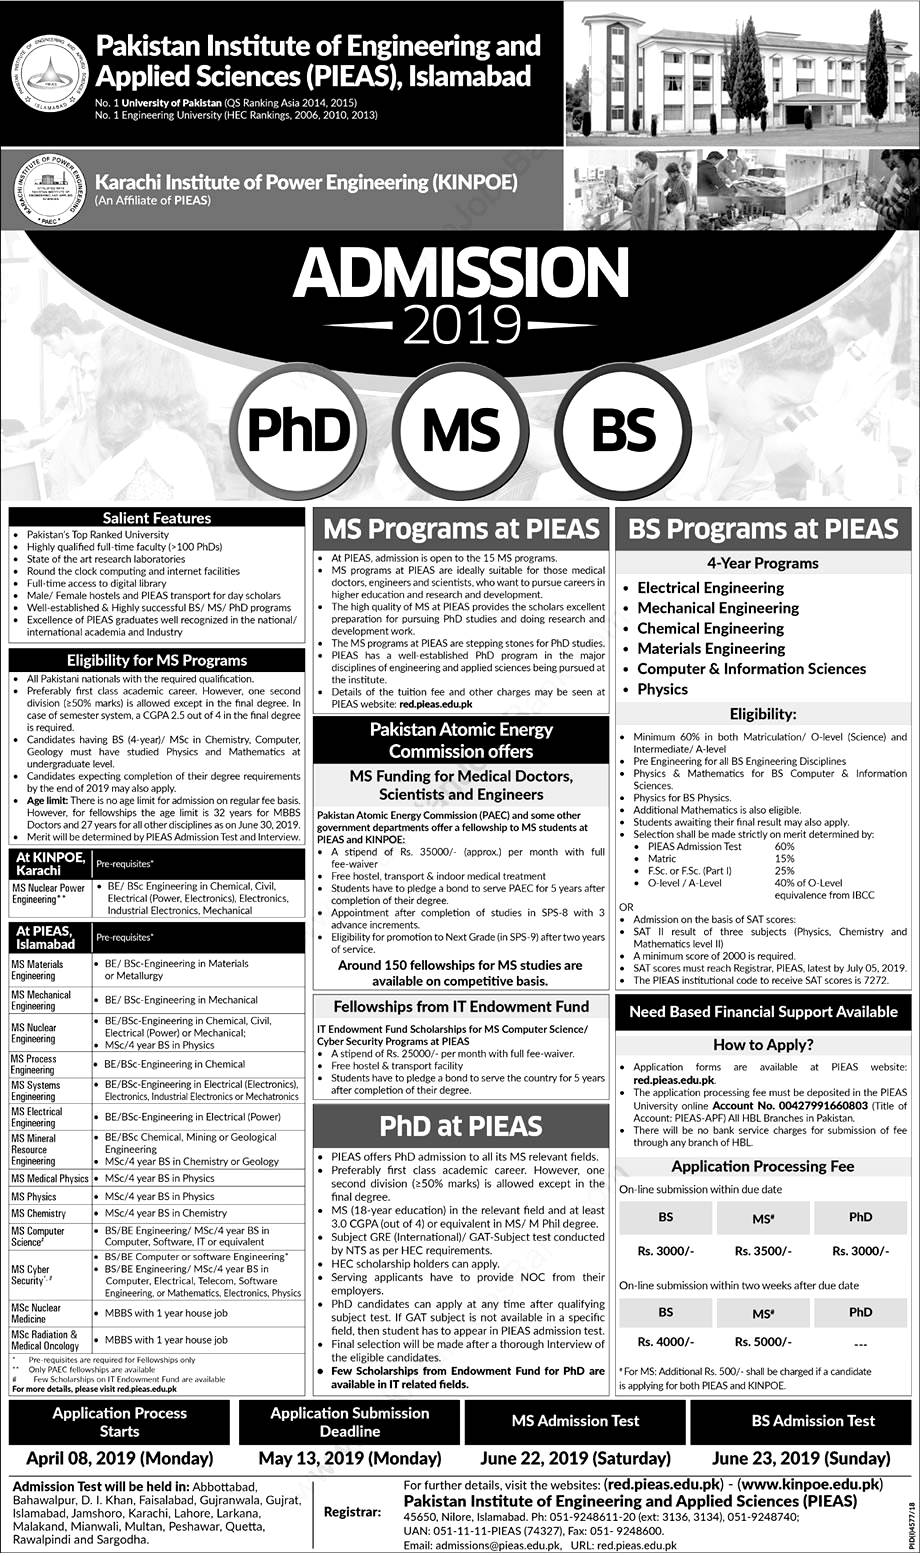 PAEC Postgraduate Fellowships Program at PIEAS and KINOPE for Engineering Science and Medicine Students